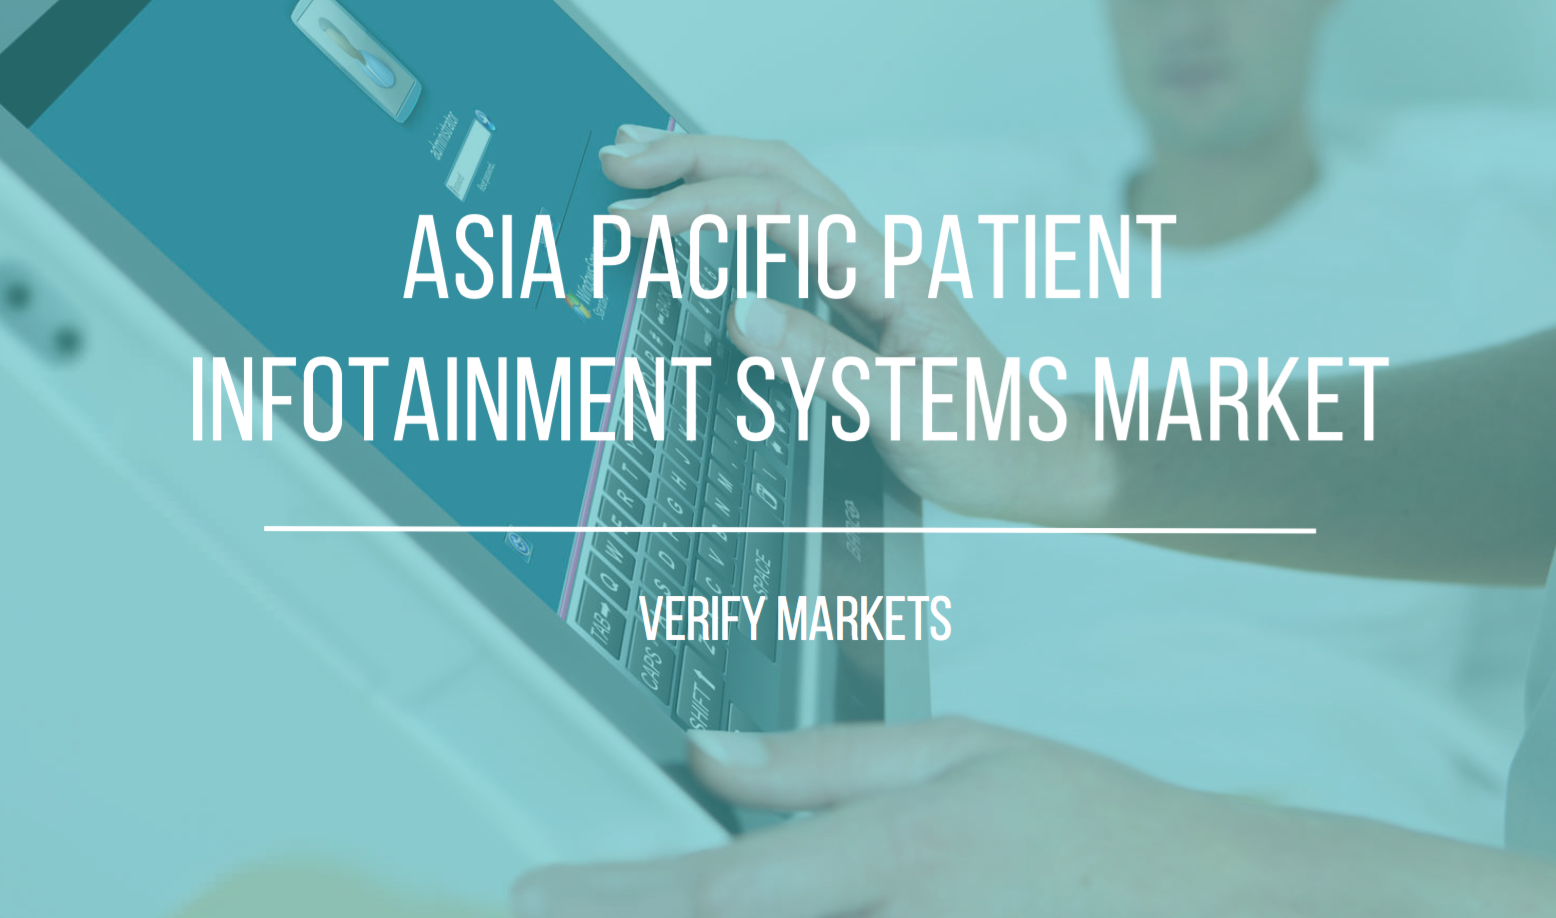 patient infotainment systems market asia pacific